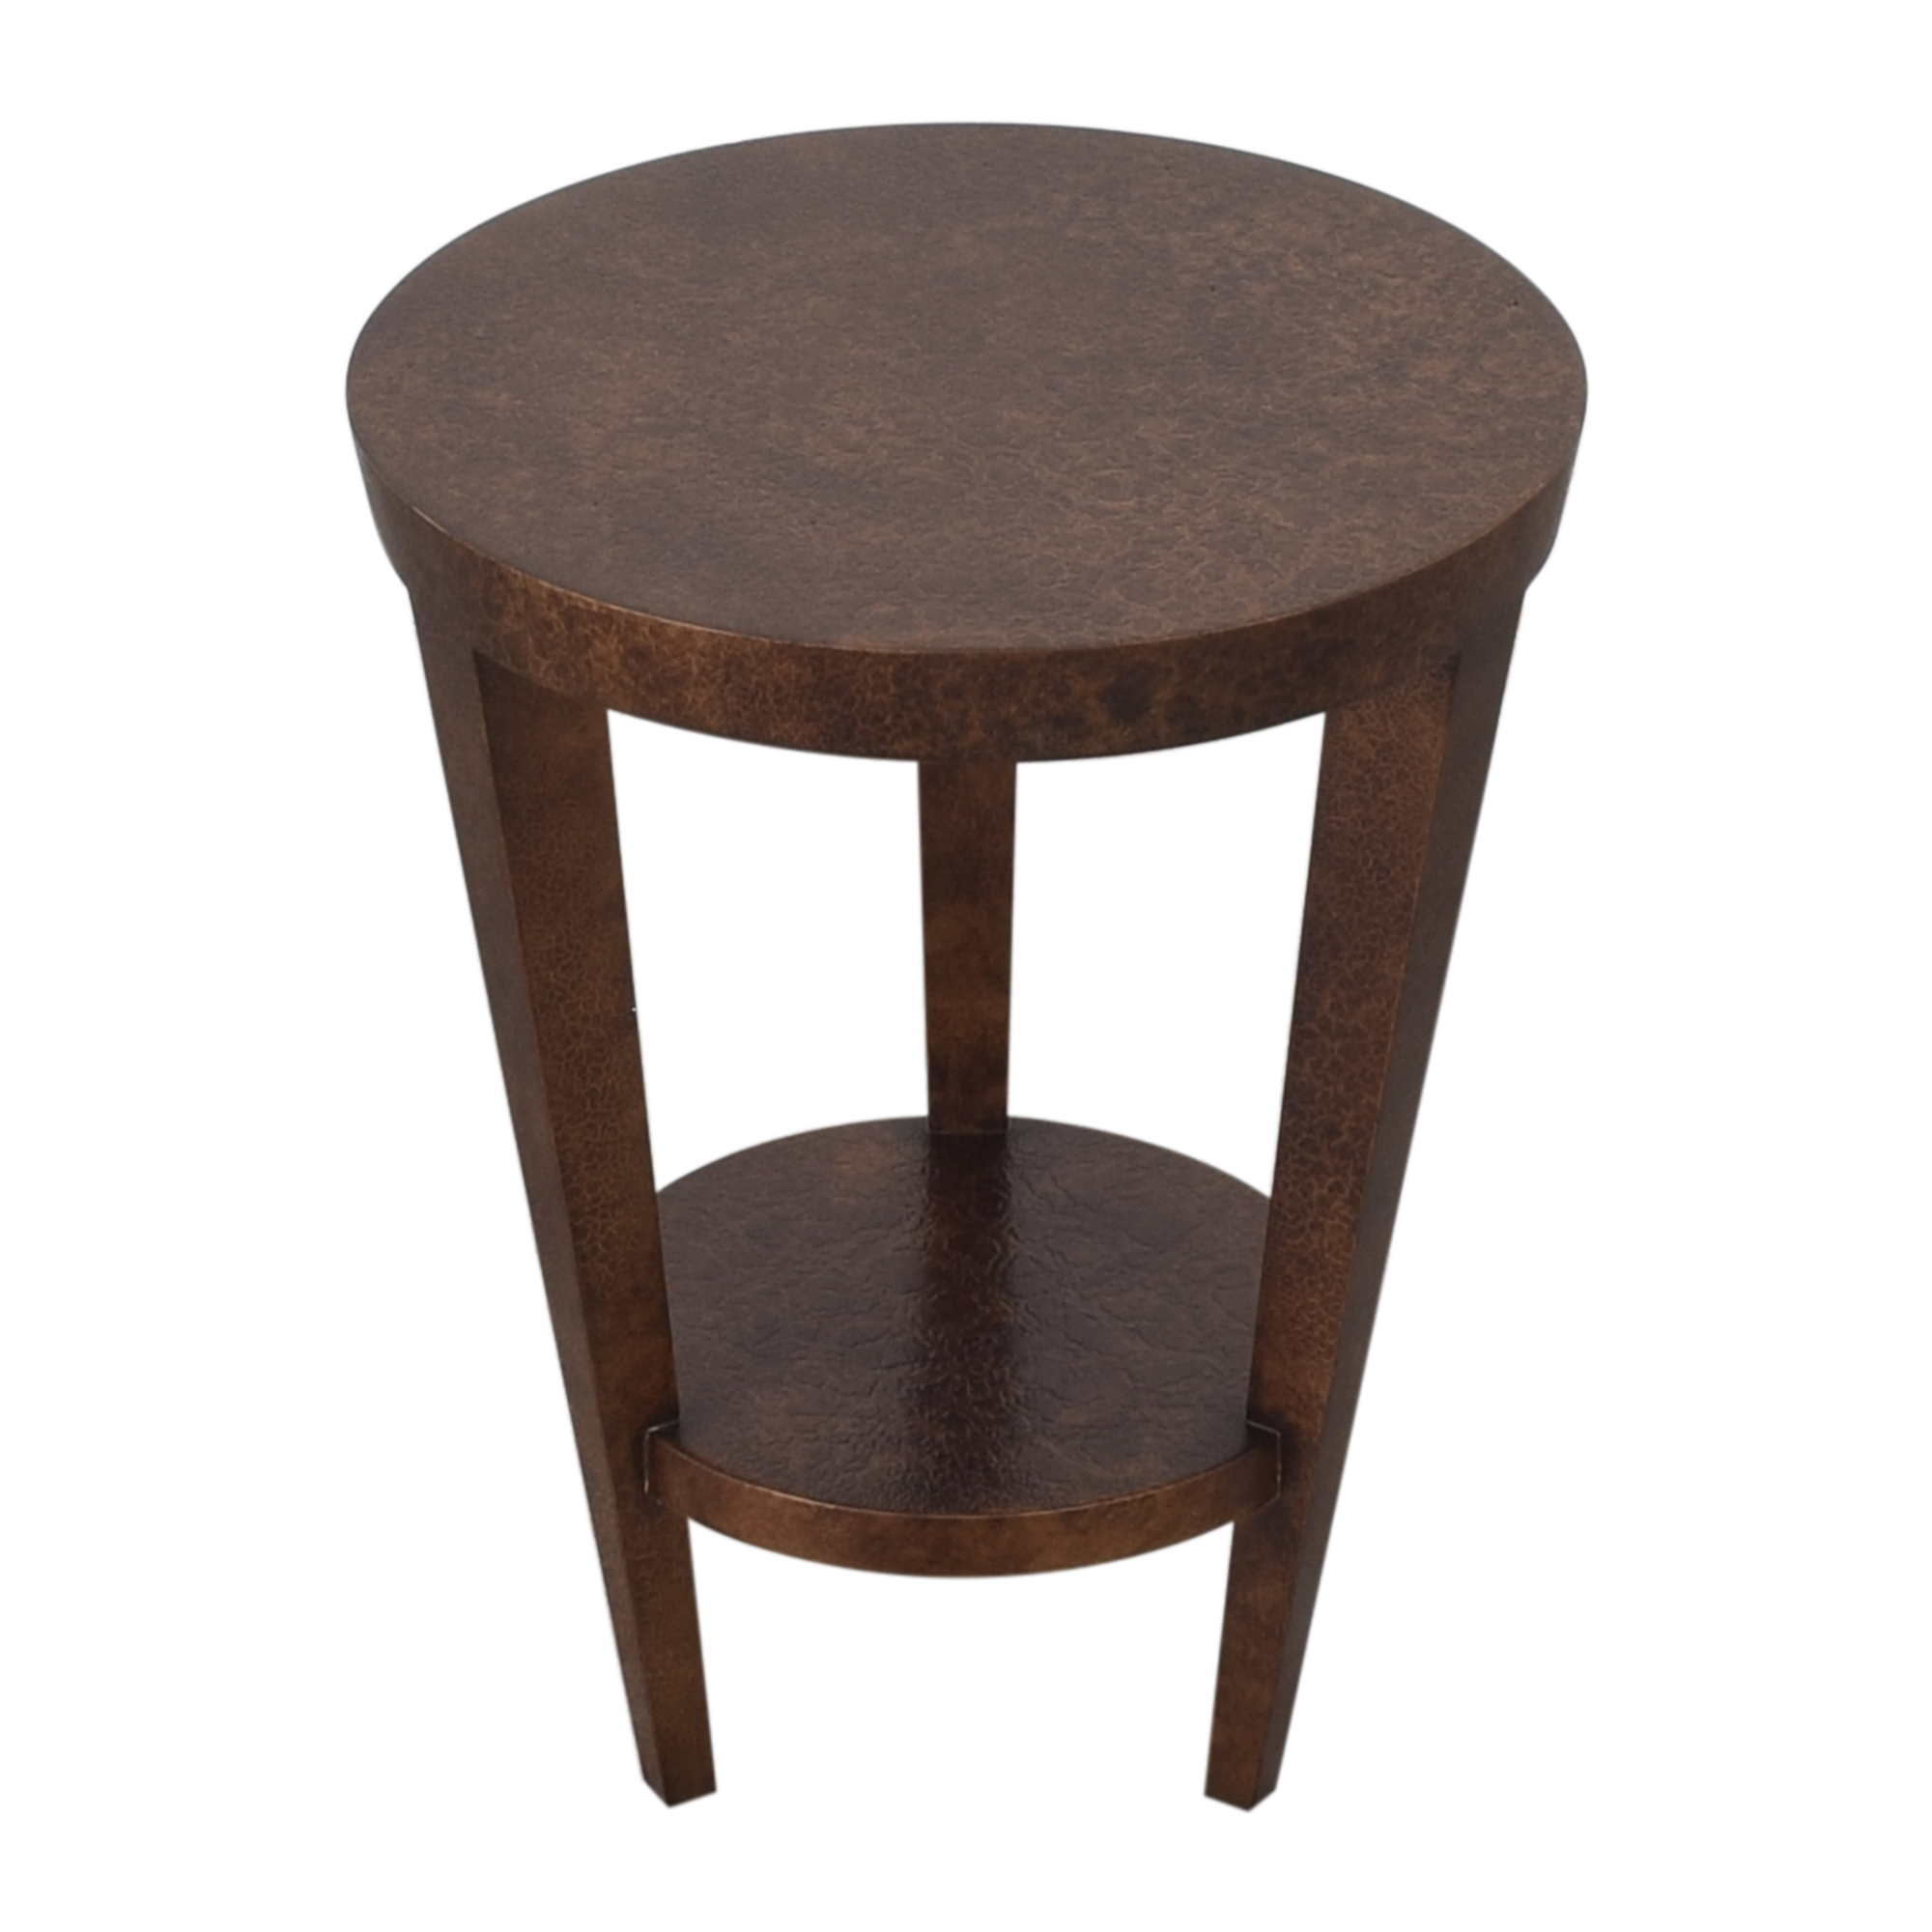 Evanson Studios Evanson Studios Art Deco Side Table